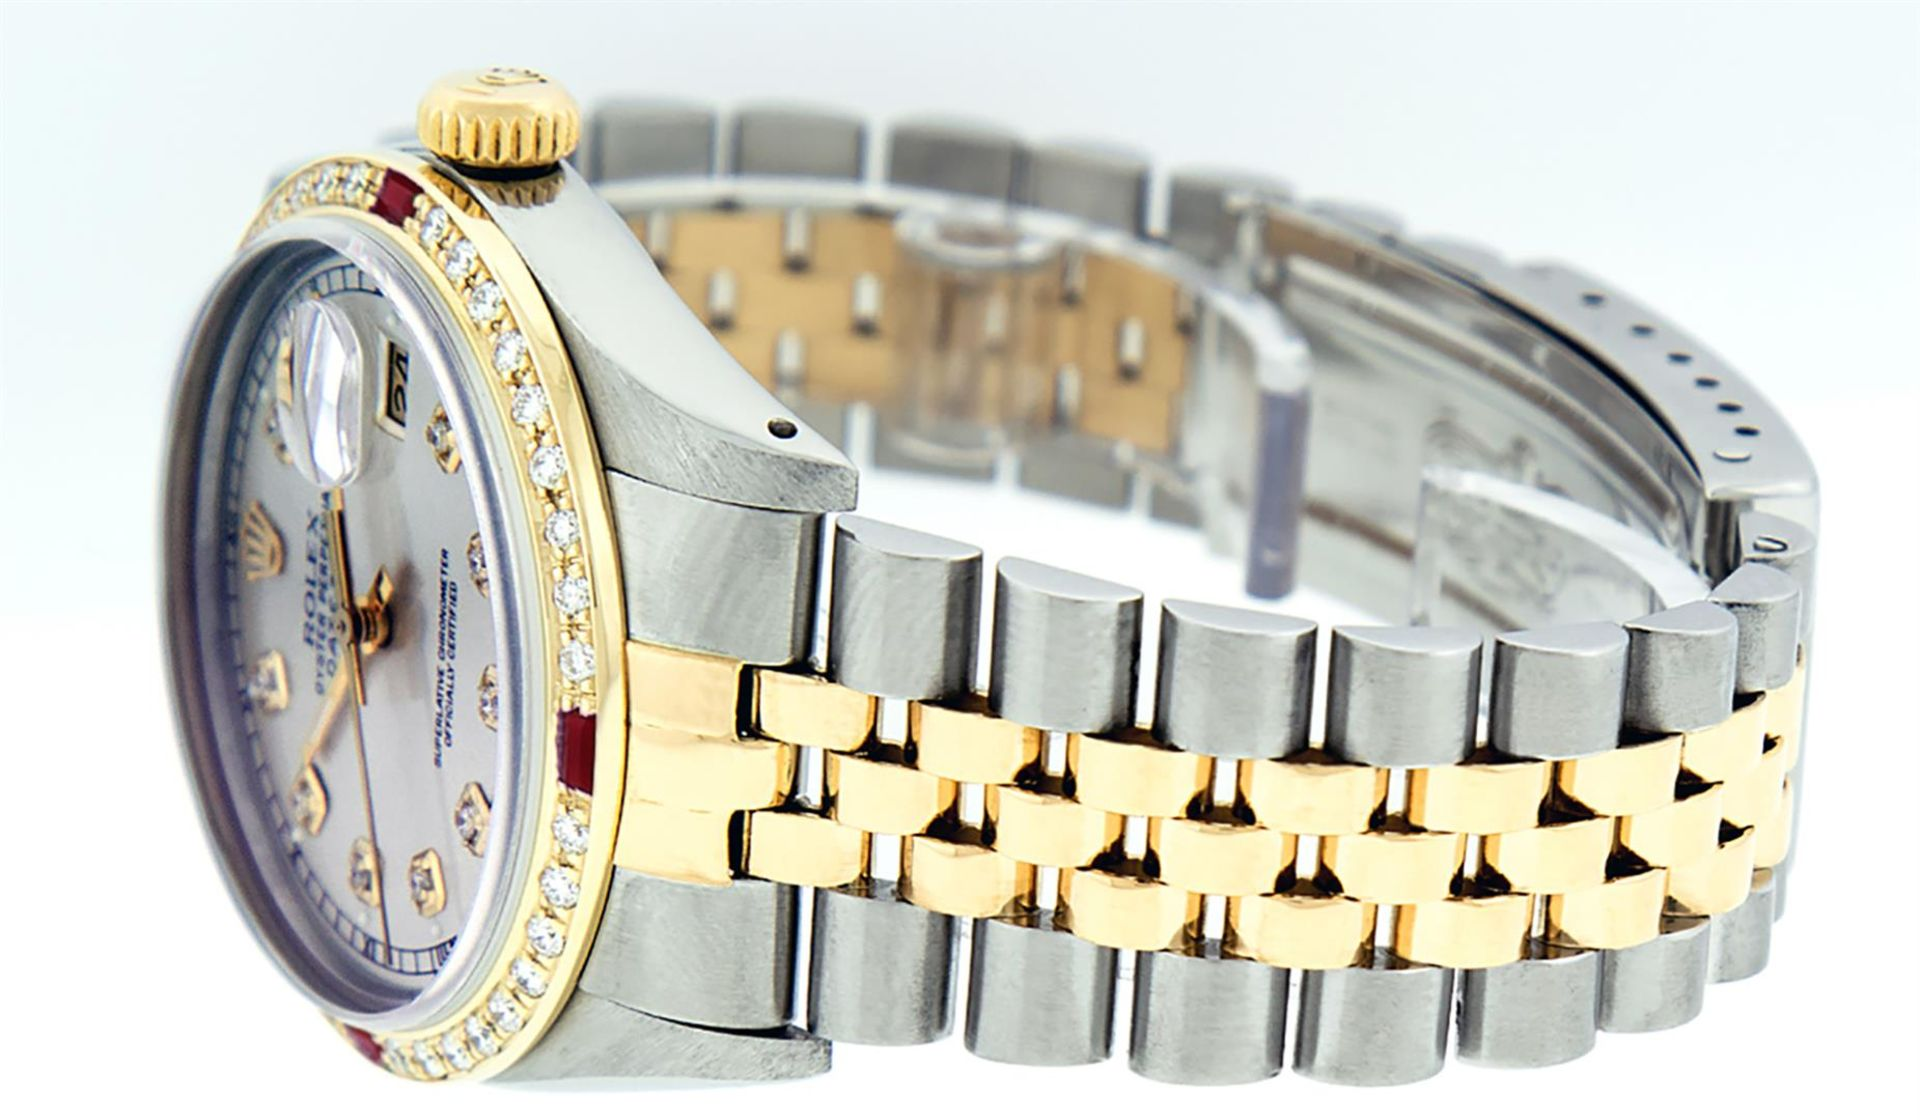 Rolex Mens 2 Tone Silver Diamond & Ruby Datejust Wristwatch - Image 9 of 9